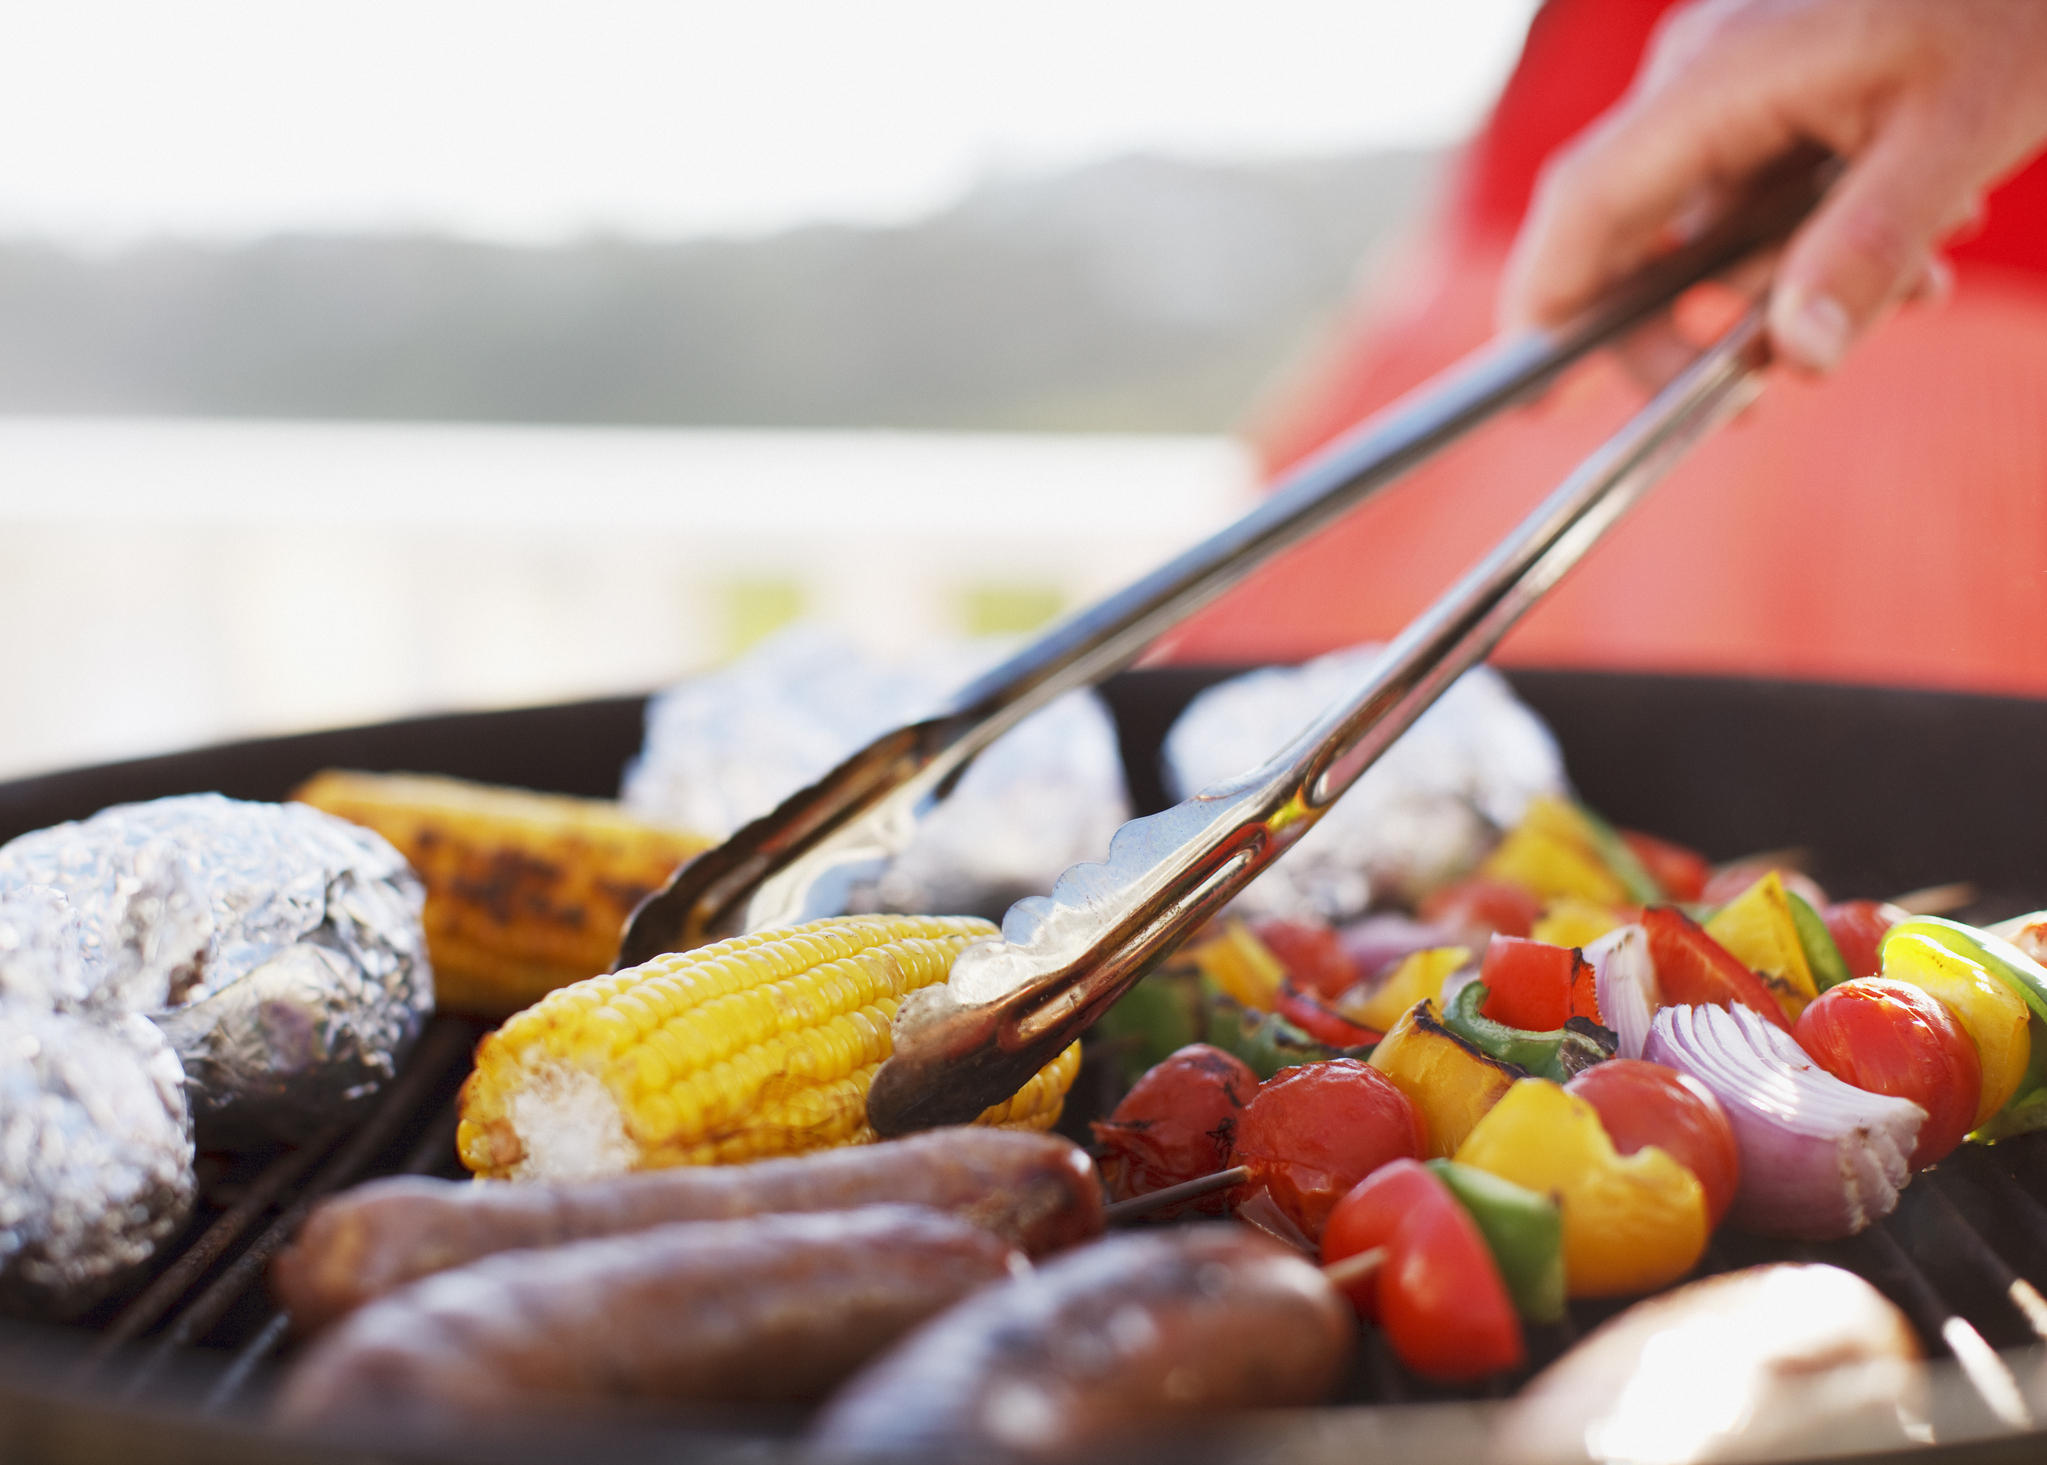 <p>Close up of man grilling food on barbecue</p>